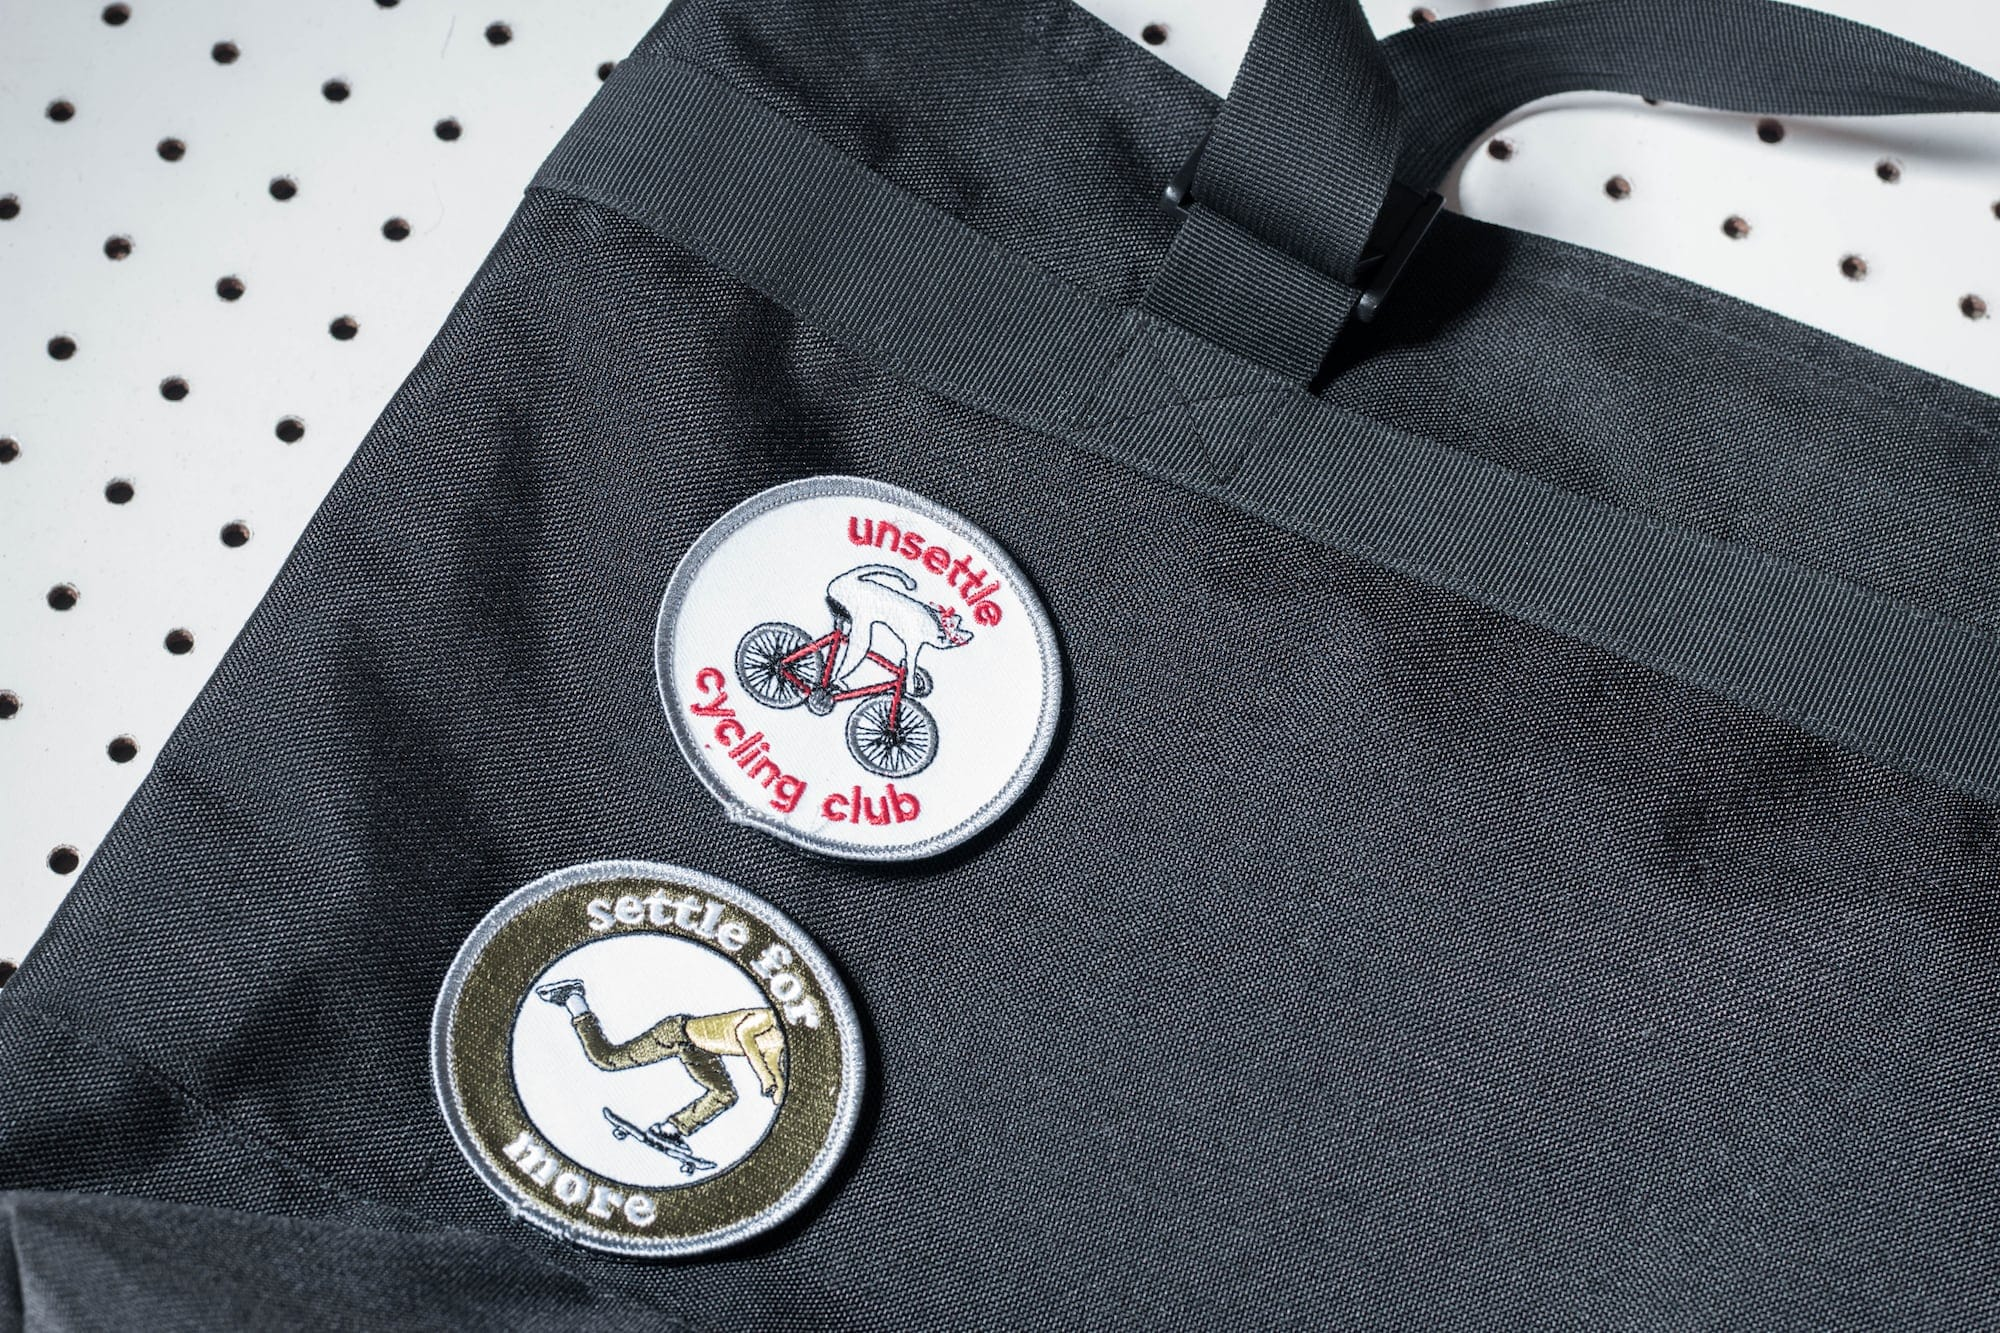 commuter tote bag attachable embroidery patches